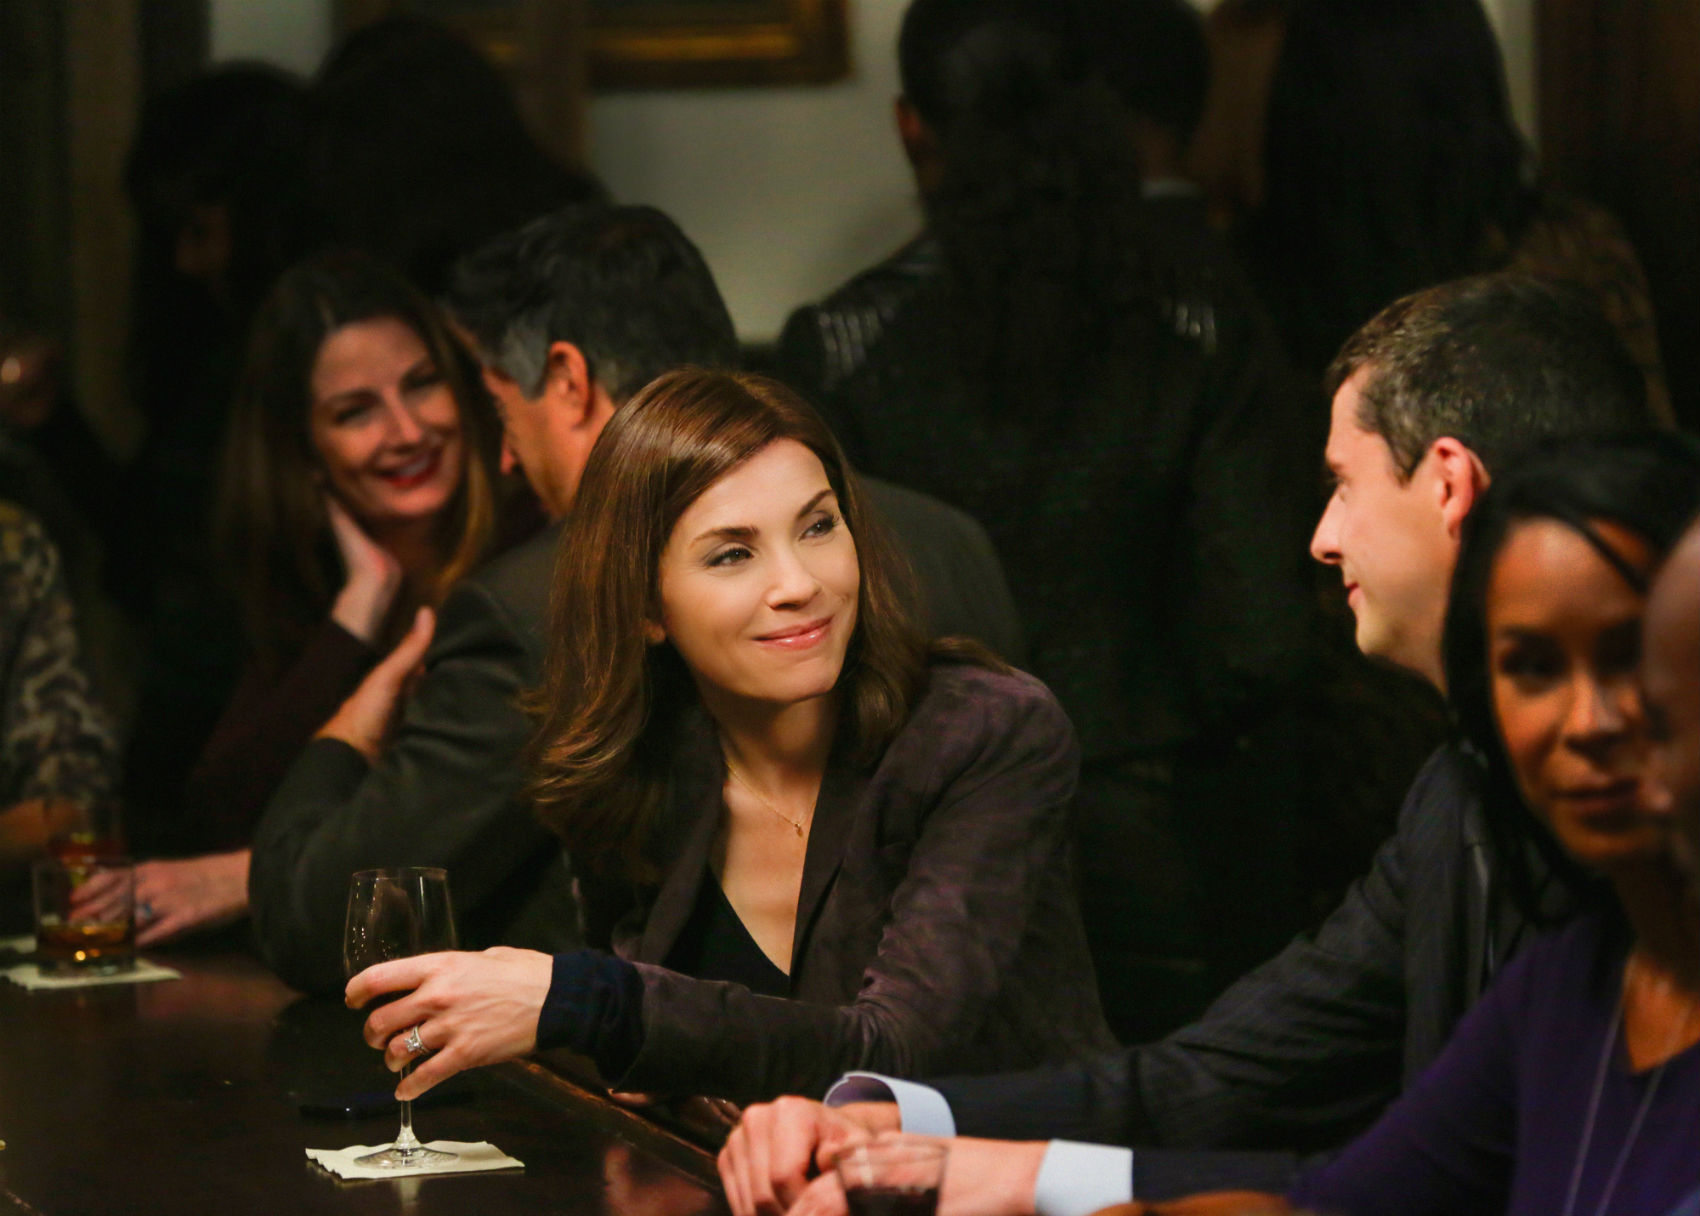 The Good Wife: Julianna Margulies in Oppo Research